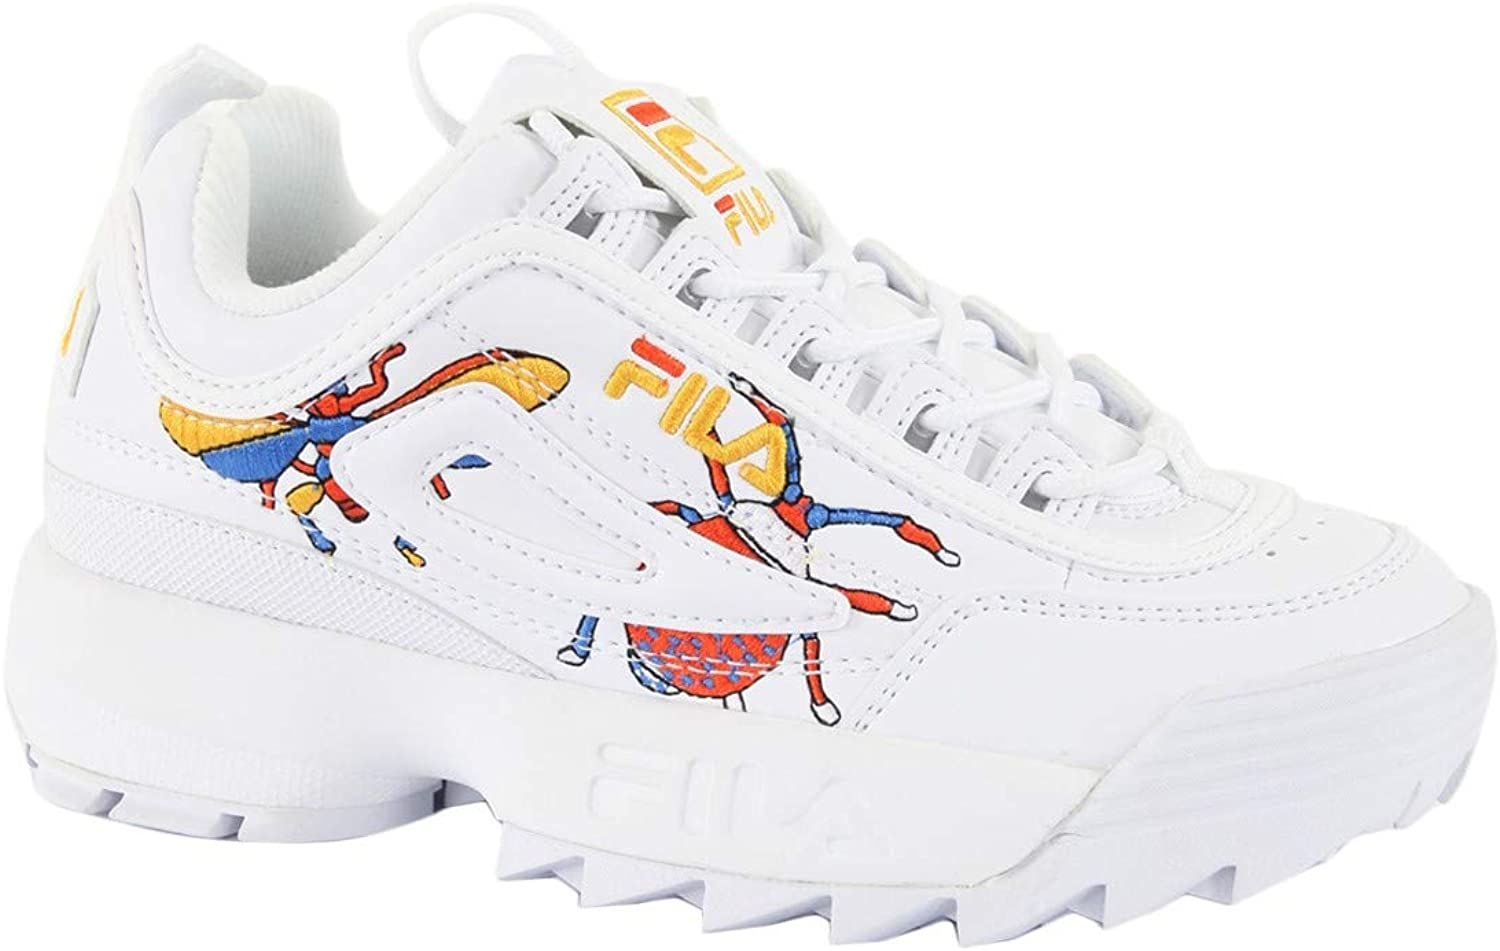 Fila Women's shoes Low Sneakers 1010609.90A Disruptor CALABRONE Low WMN Size 39 Bianco Multi